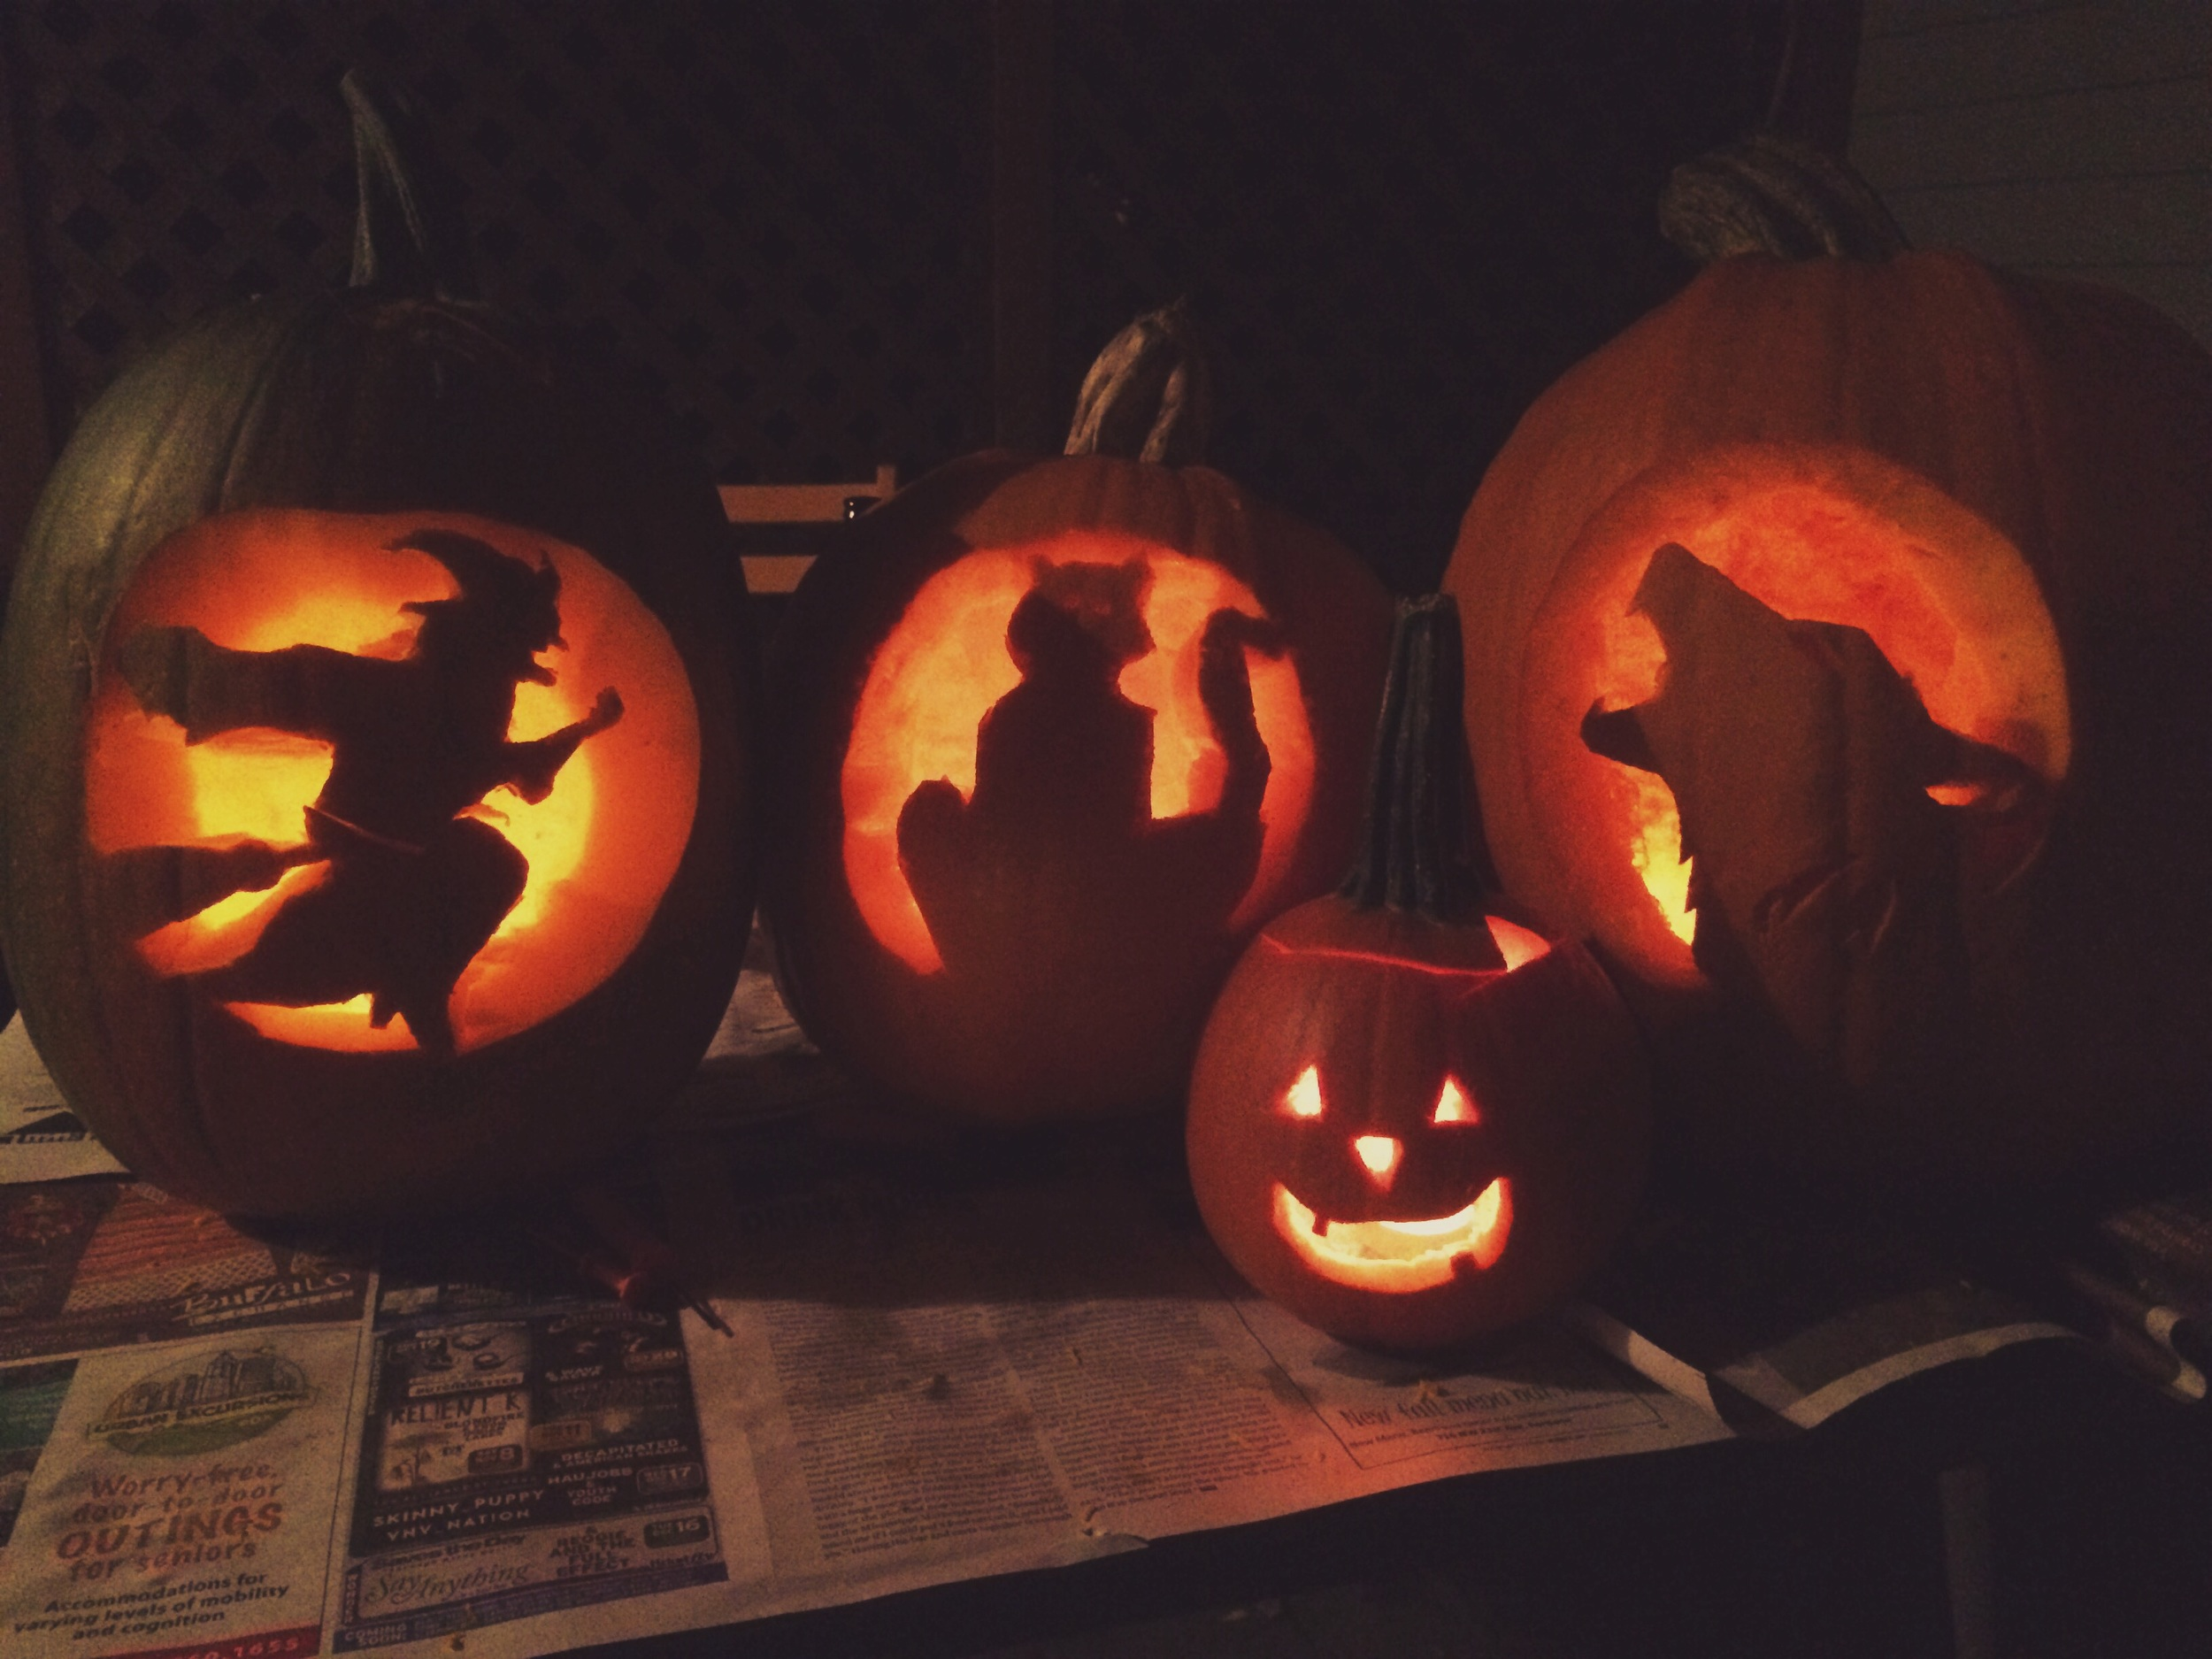 Pumpkins left to right - Marshal's, Jenni's, Ryan's, and mine :)